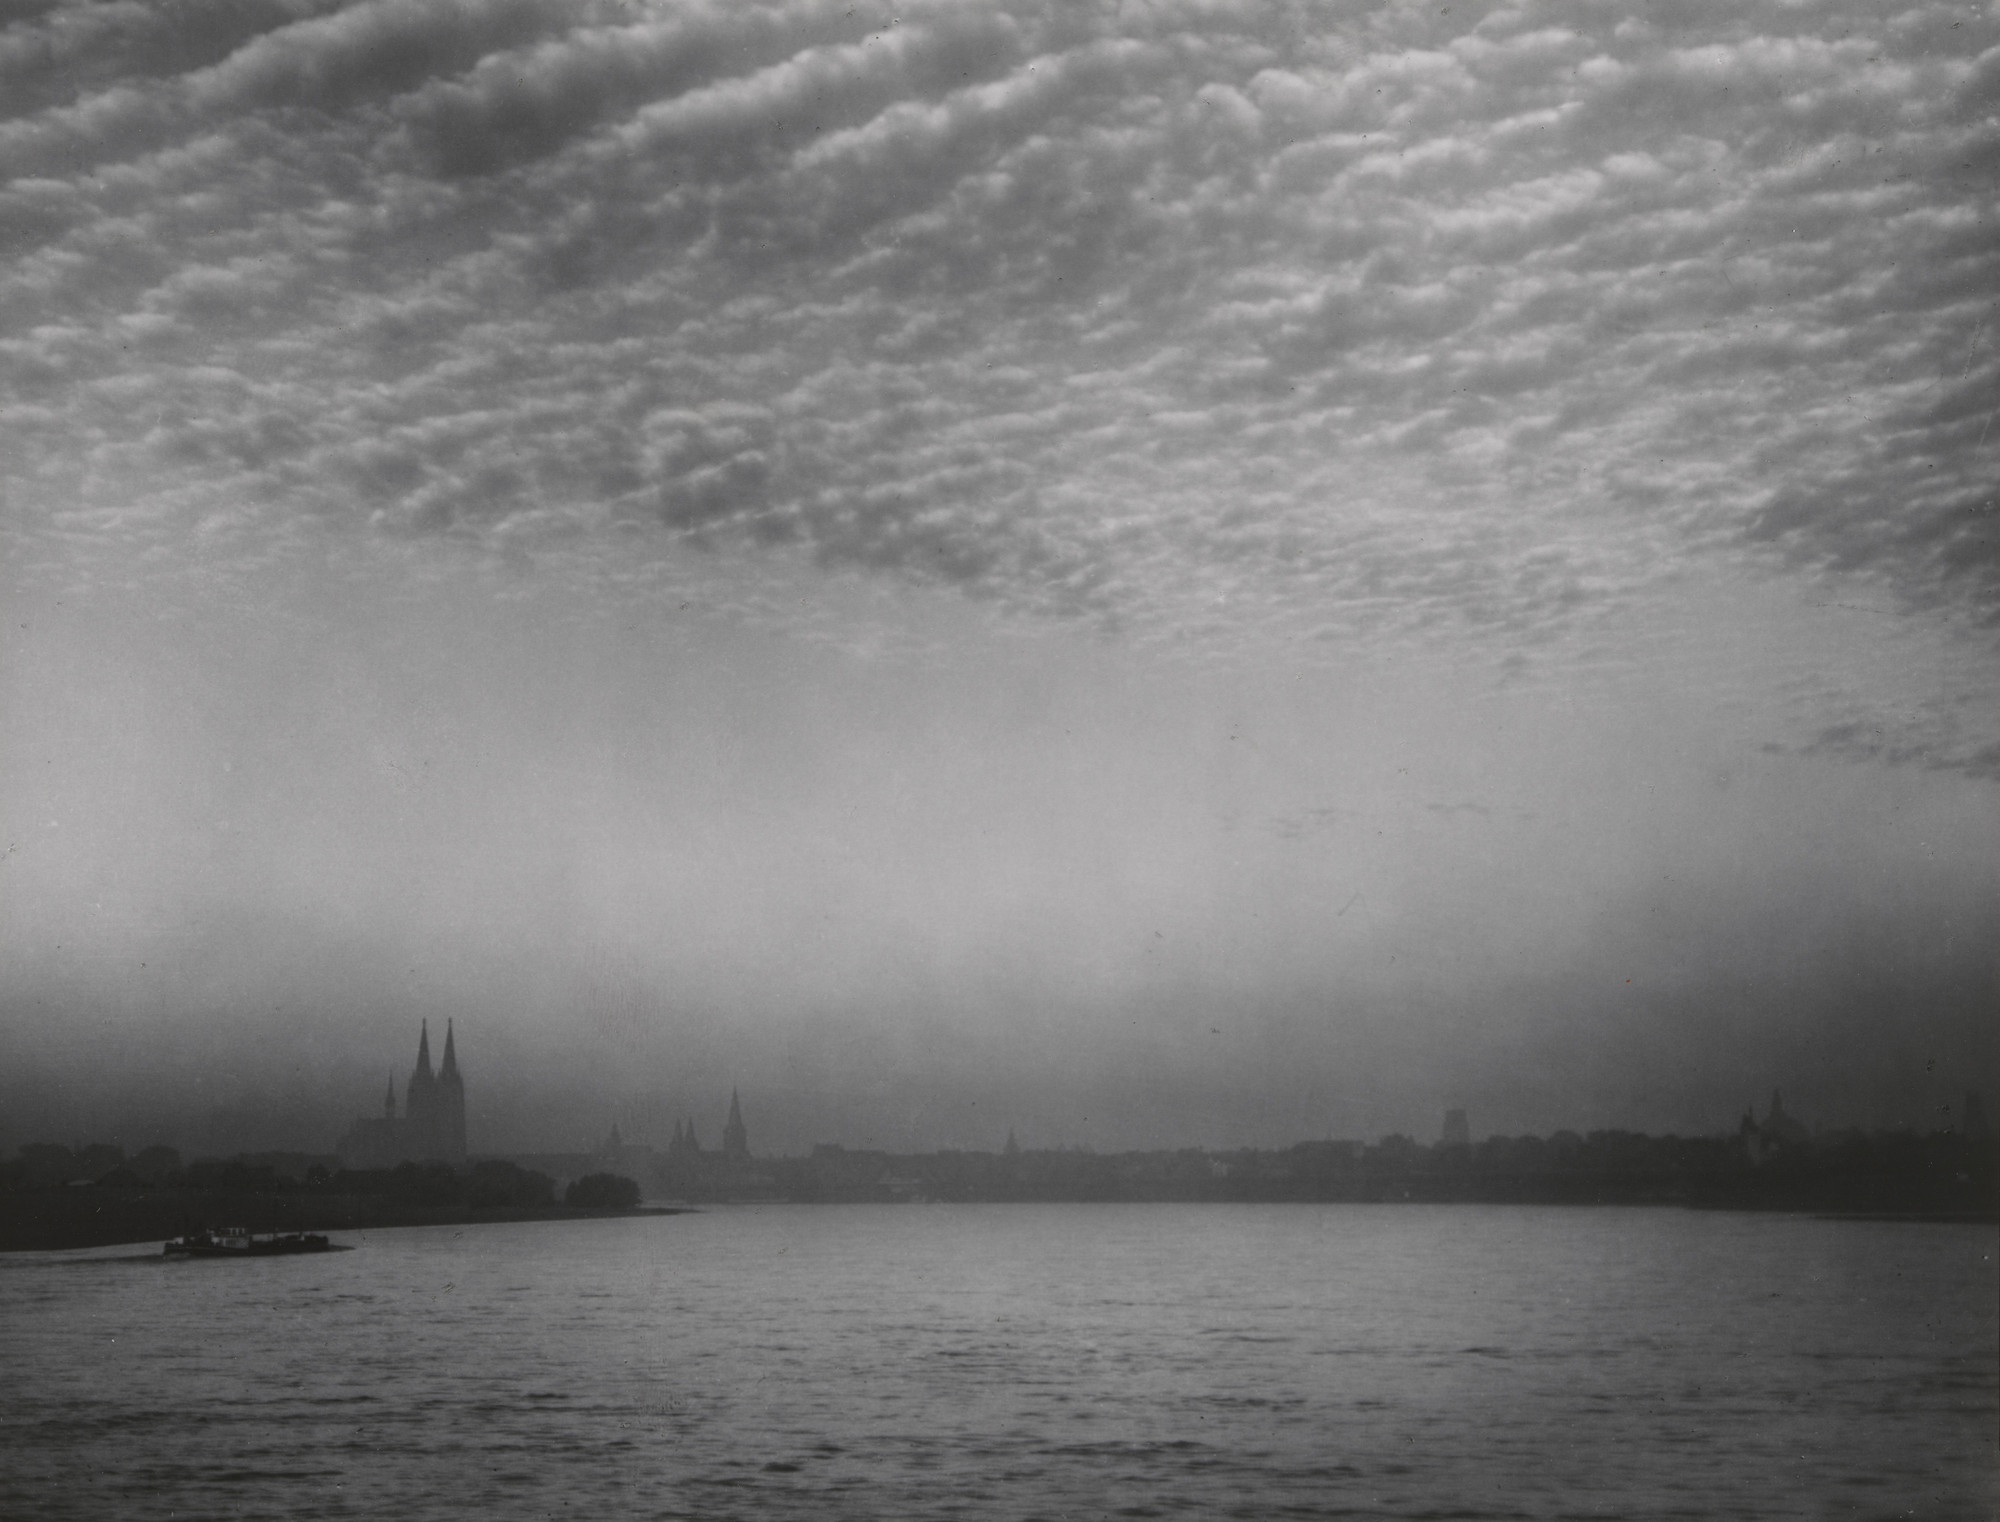 August Sander. Cologne in the Morning Hours. 1938